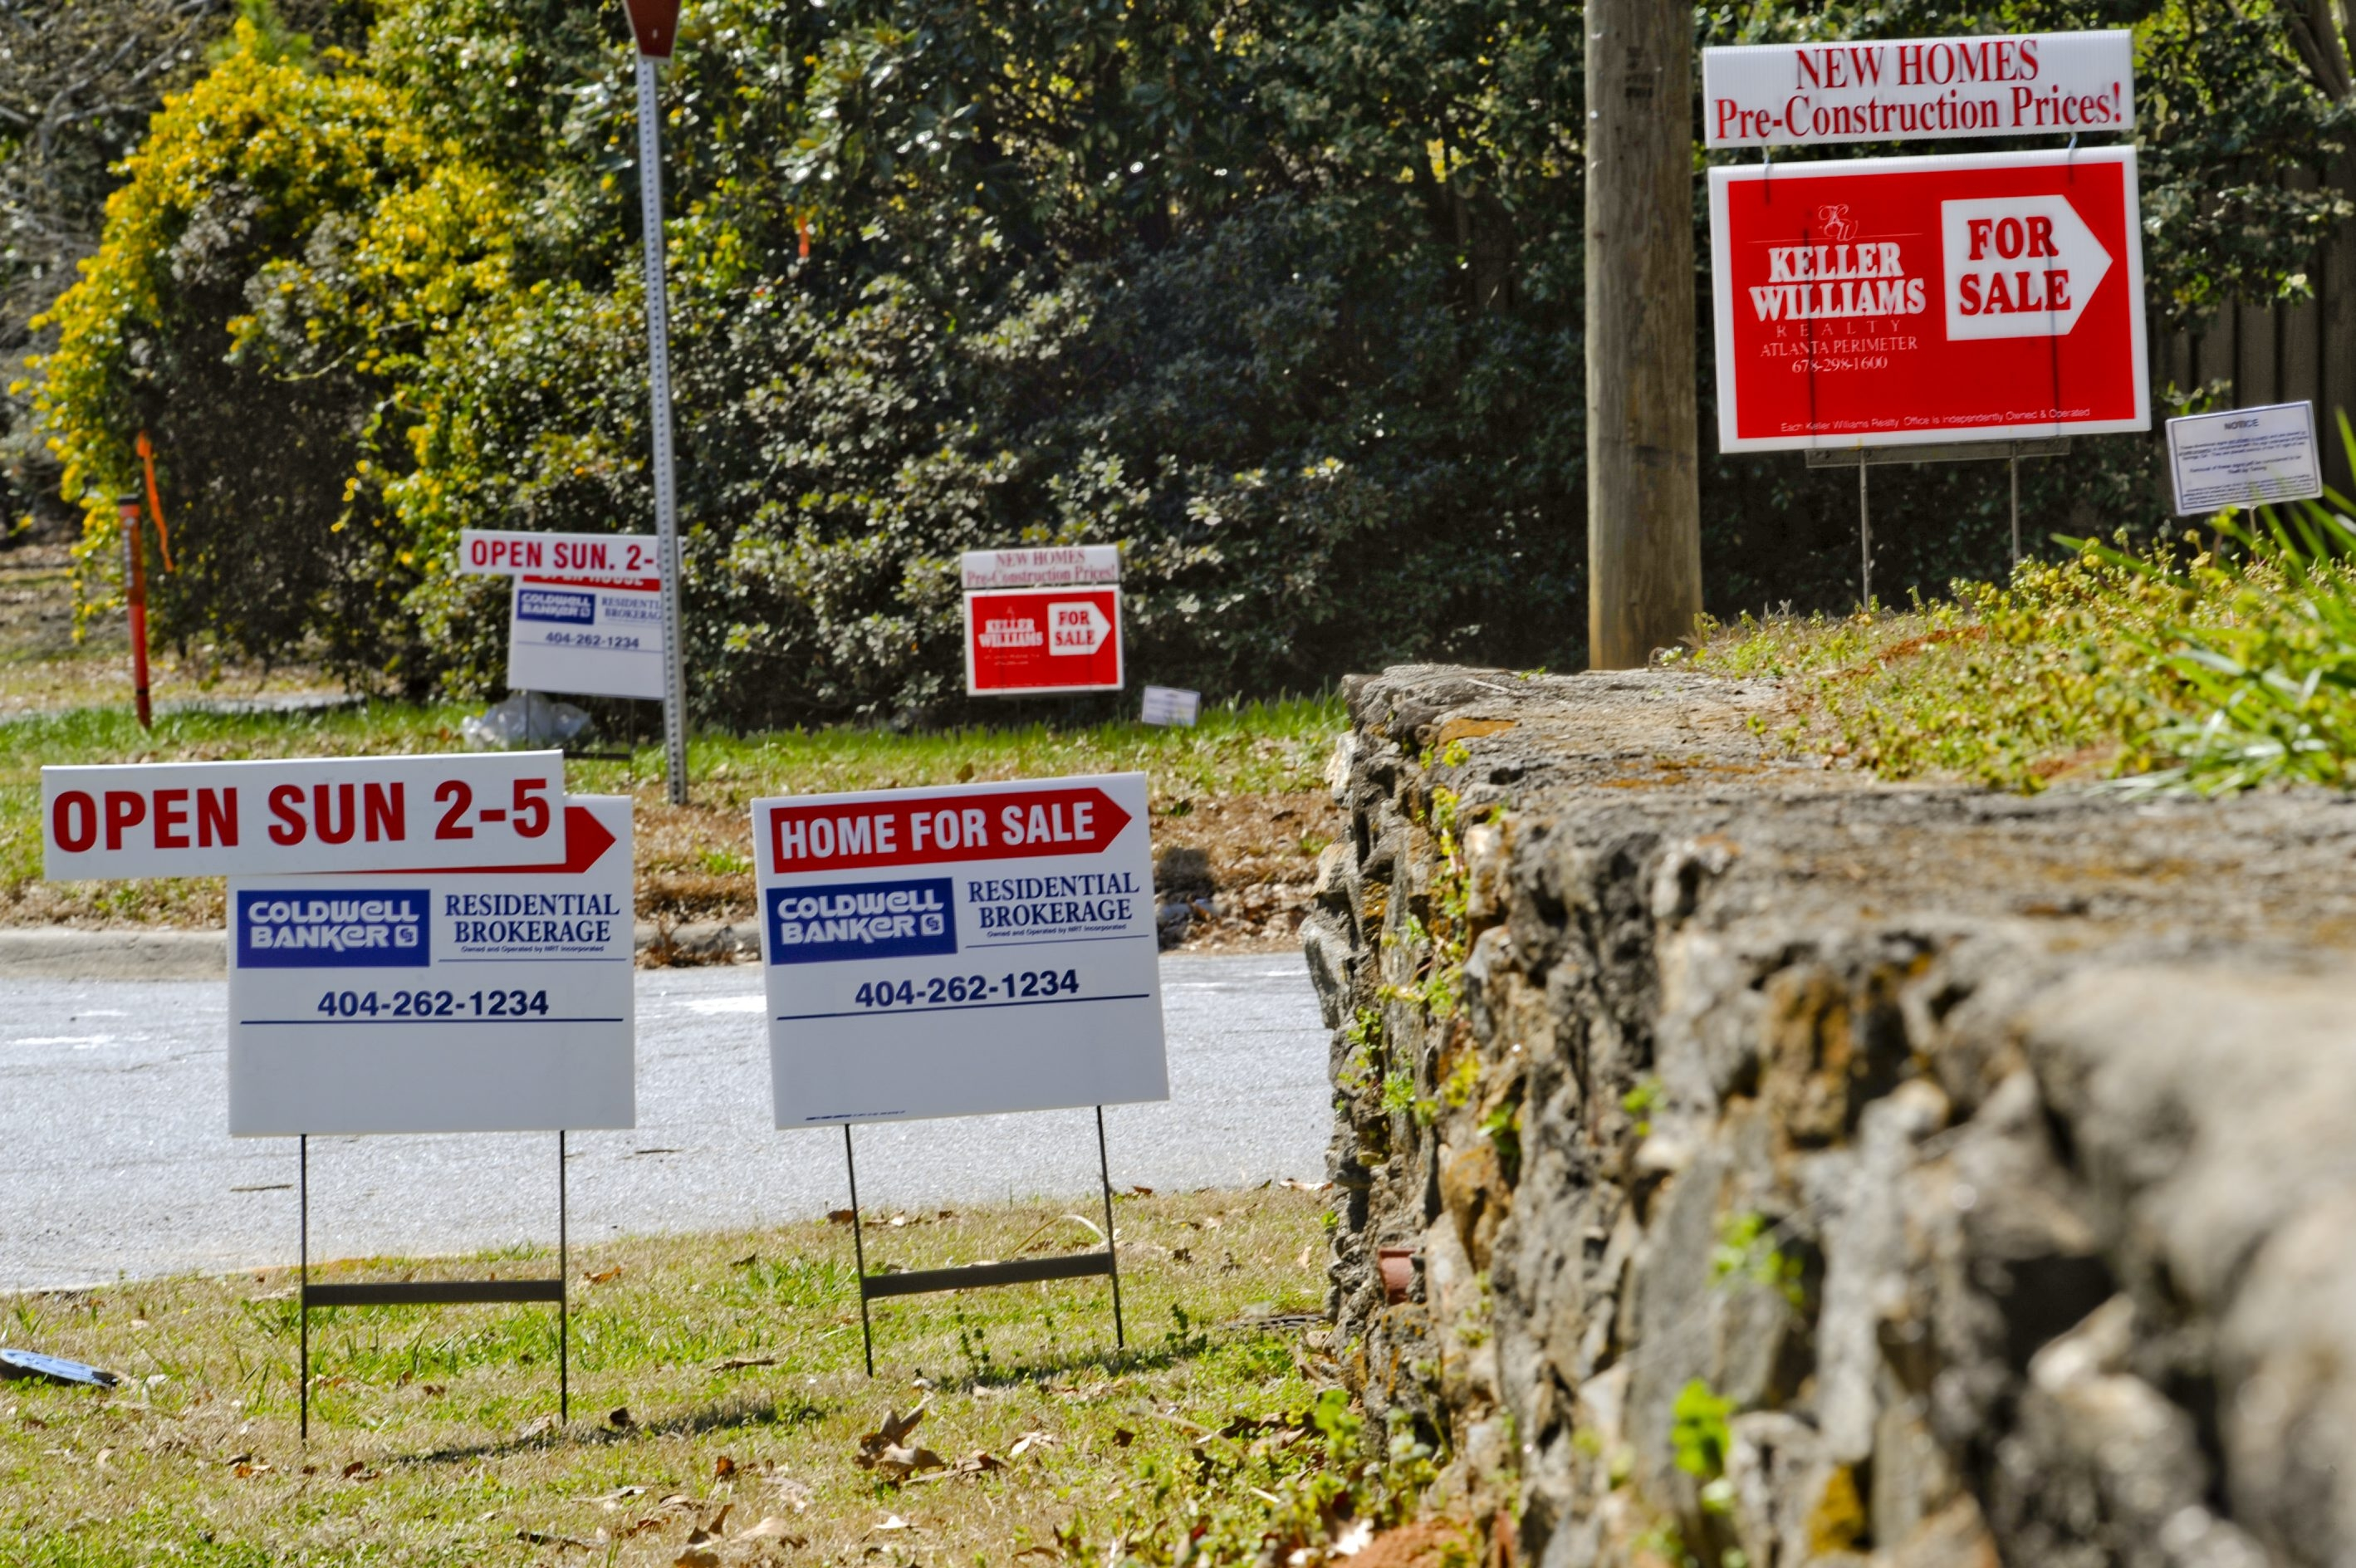 Signs advertise homes for sale along a road in Sandy Springs, Georgia, U.S., on Sunday, March 22, 2009. The deepening economic slump prompted the Federal Reserve last week to commit as much as $1.1 trillion more to aid the flow of credit. Financing has dried up as lenders try to cut losses following the surge in foreclosures, offsetting a drop in mortgage rates that has made home buying more affordable. Photographer: Chris Rank/Bloomberg News